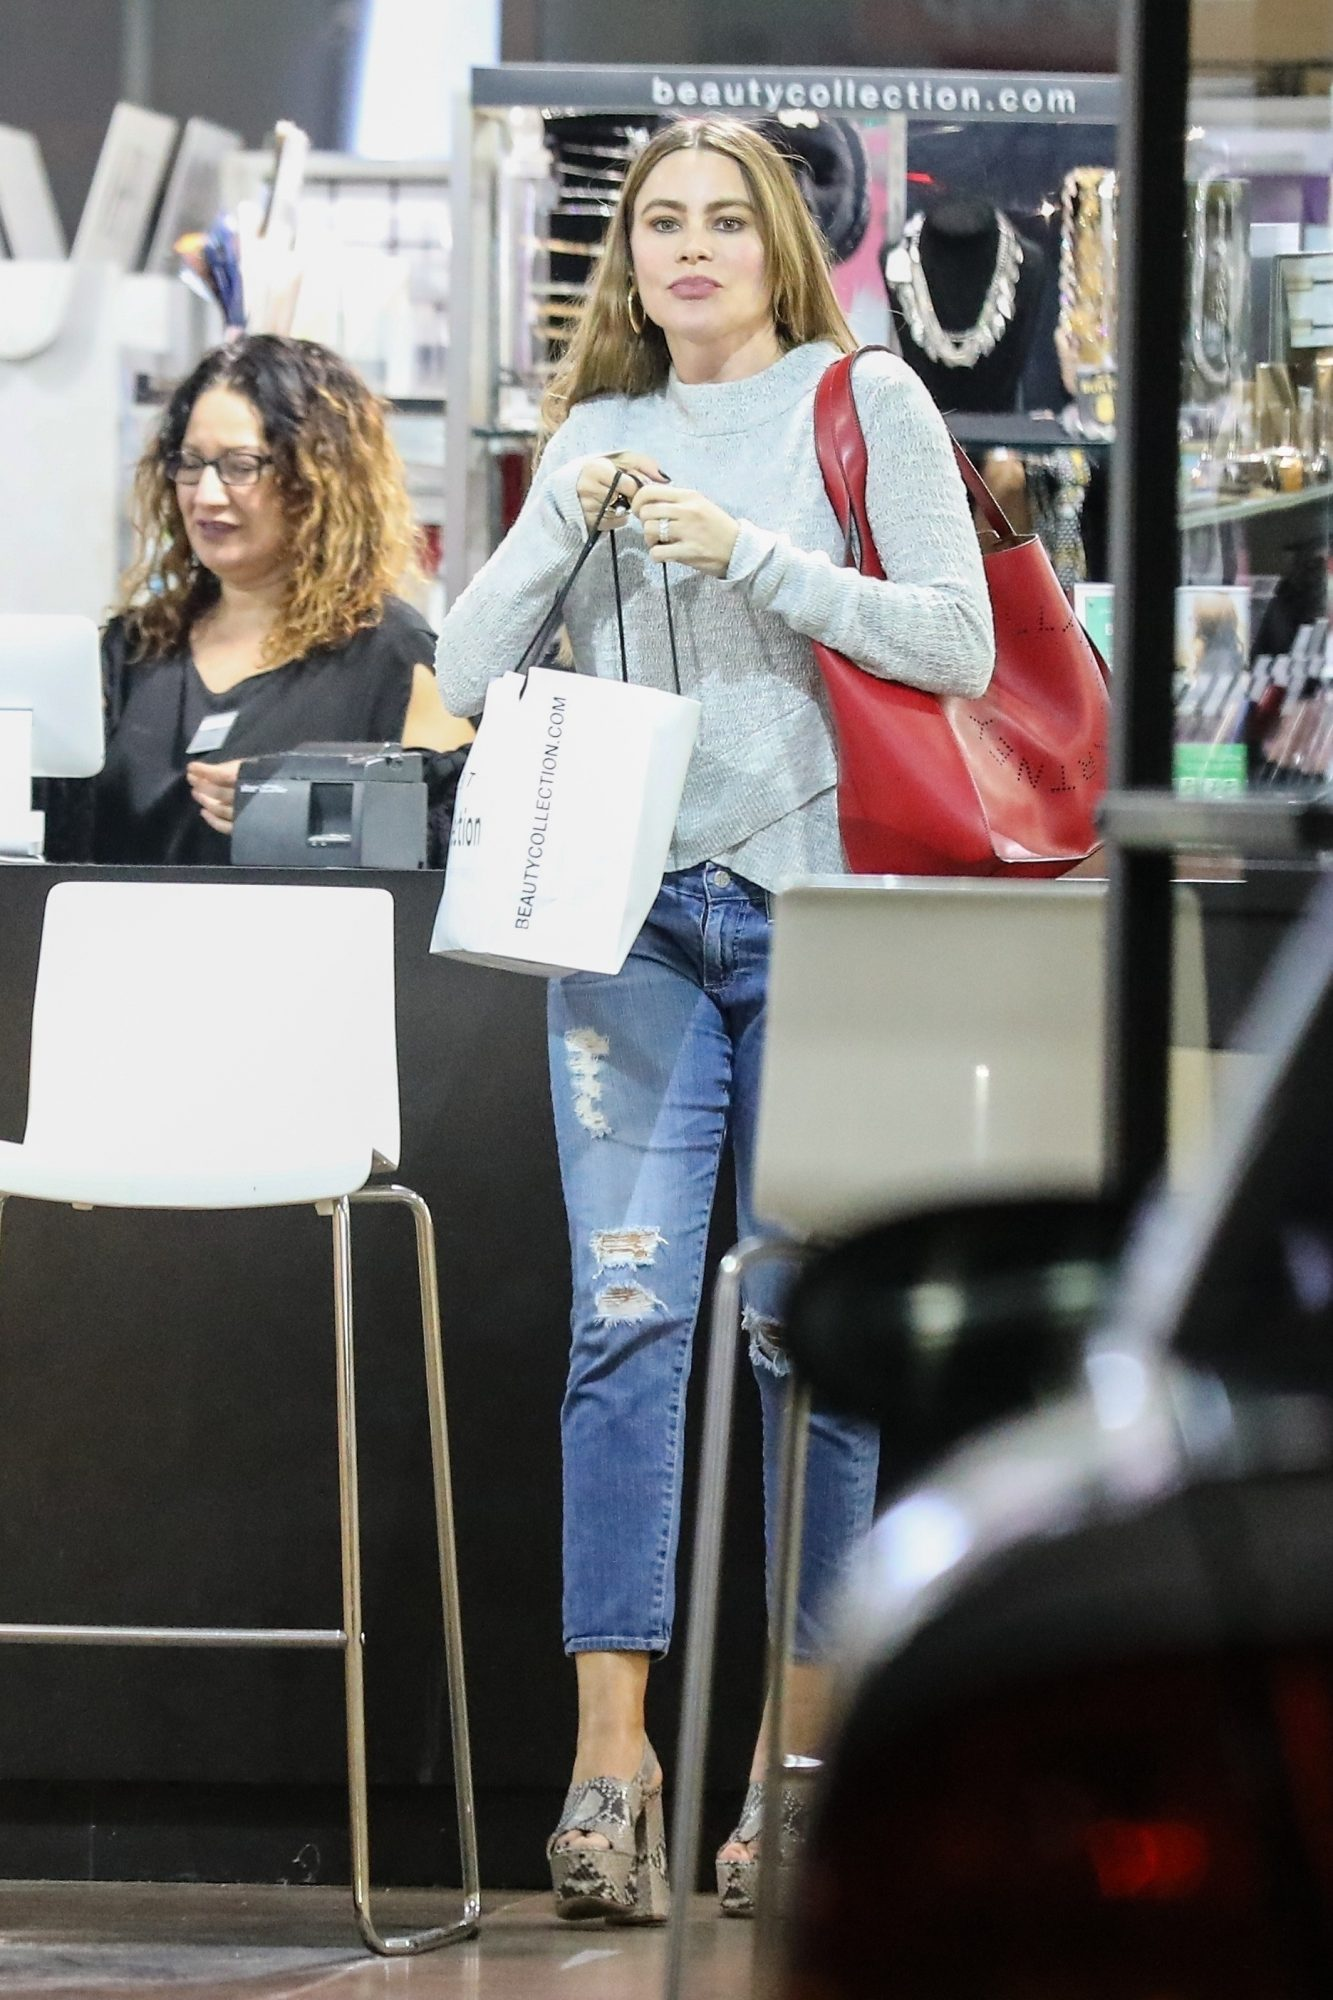 Sofia Vergara gets some shopping done at Beauty Collection store in West Hollywood